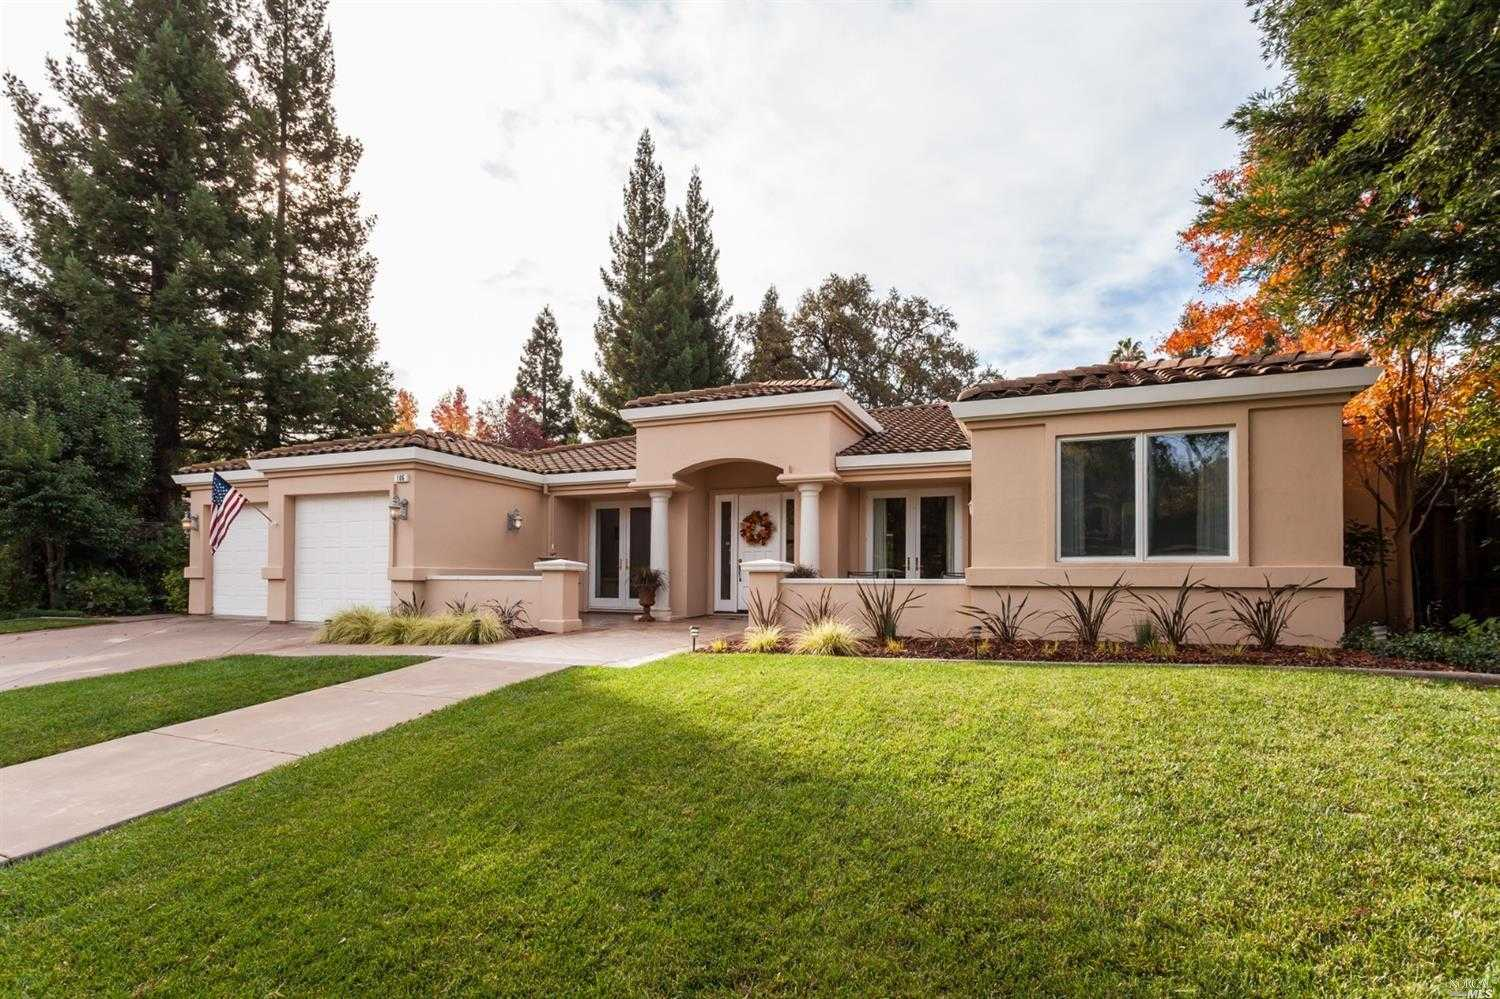 $850,000 - 3Br/3Ba -  for Sale in Vacaville